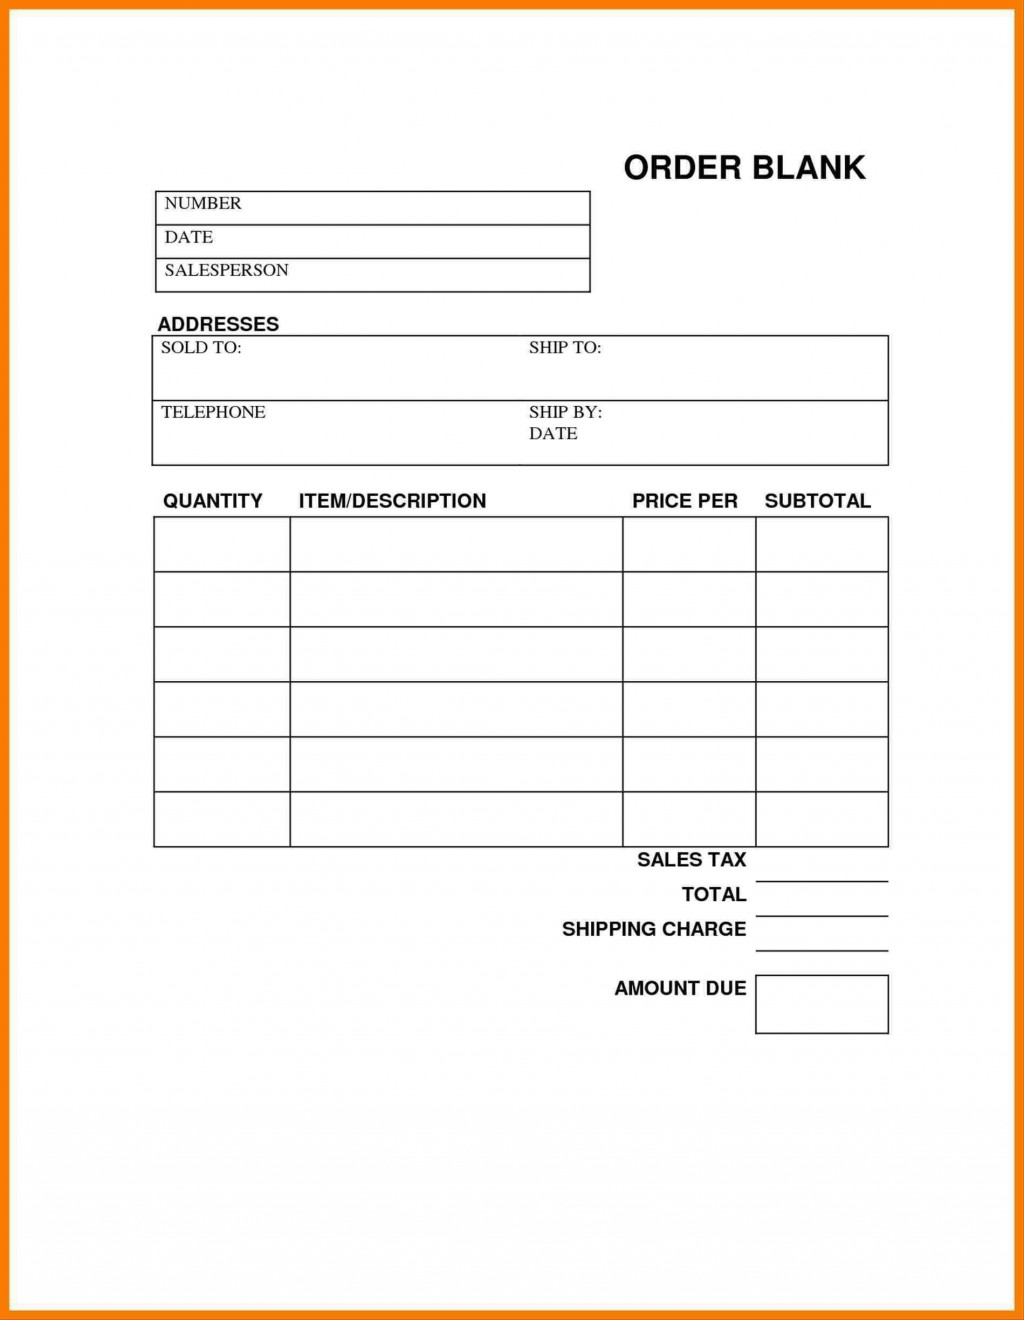 004 Awful Printable Order Form Template High Resolution  Templates Fundraiser Food CakeLarge